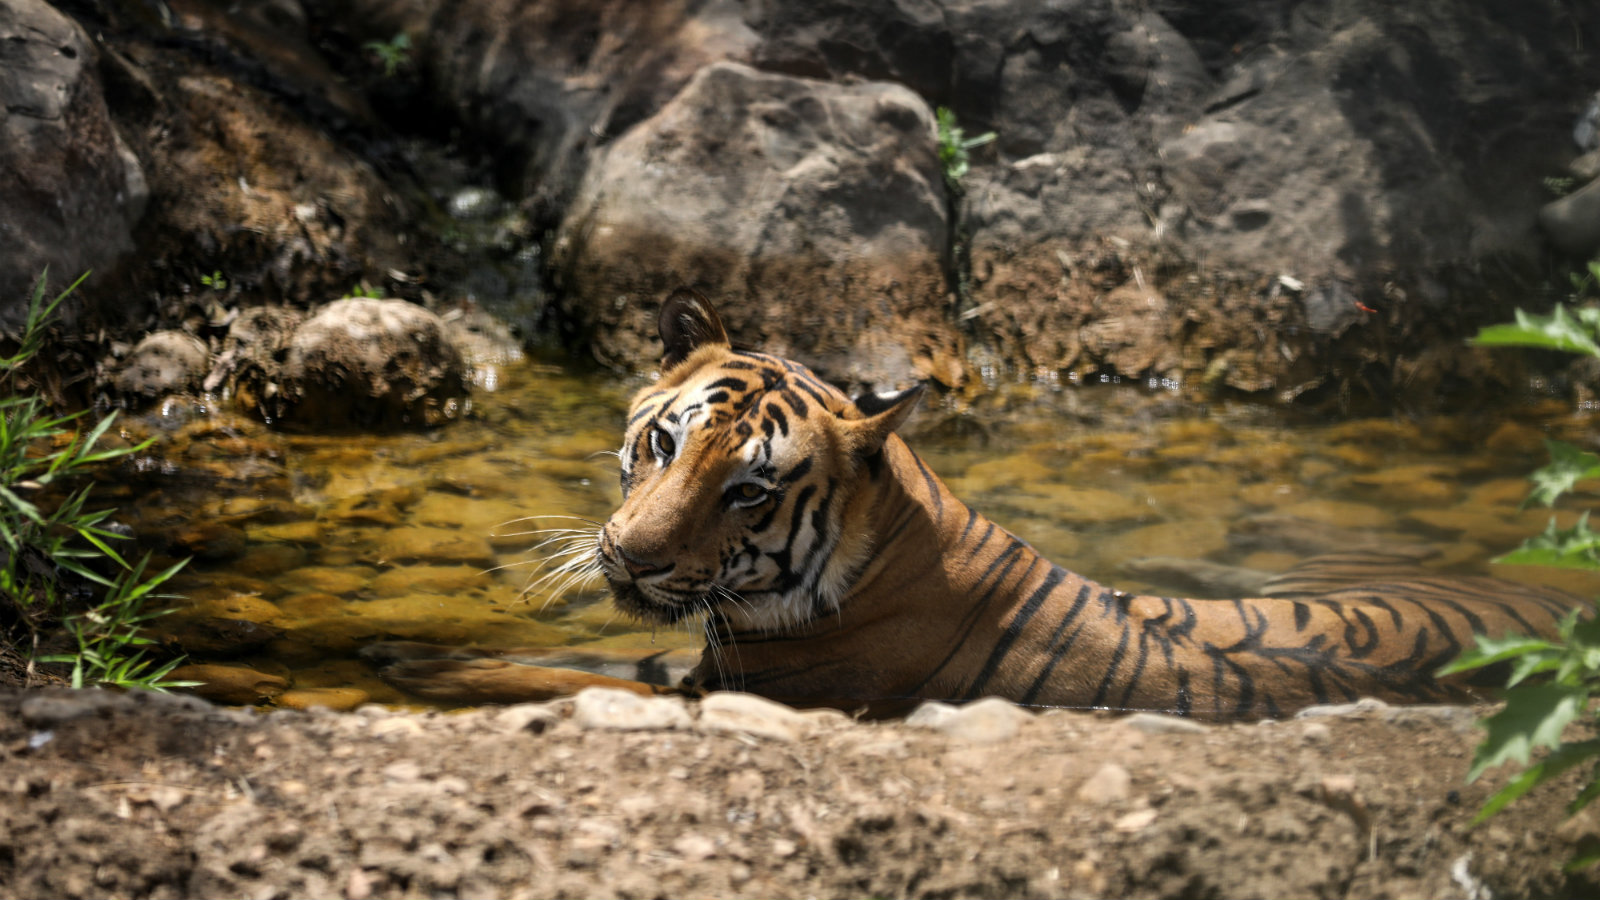 An Indian Royal Bengal tiger cools off in water inside the Sanjay Gandhi National Park in Mumbai, India, 03 May 2017. According to reports, large parts of Maharashtra is under heatwave, with unusual temperature hovering above 40 degree Celsius.